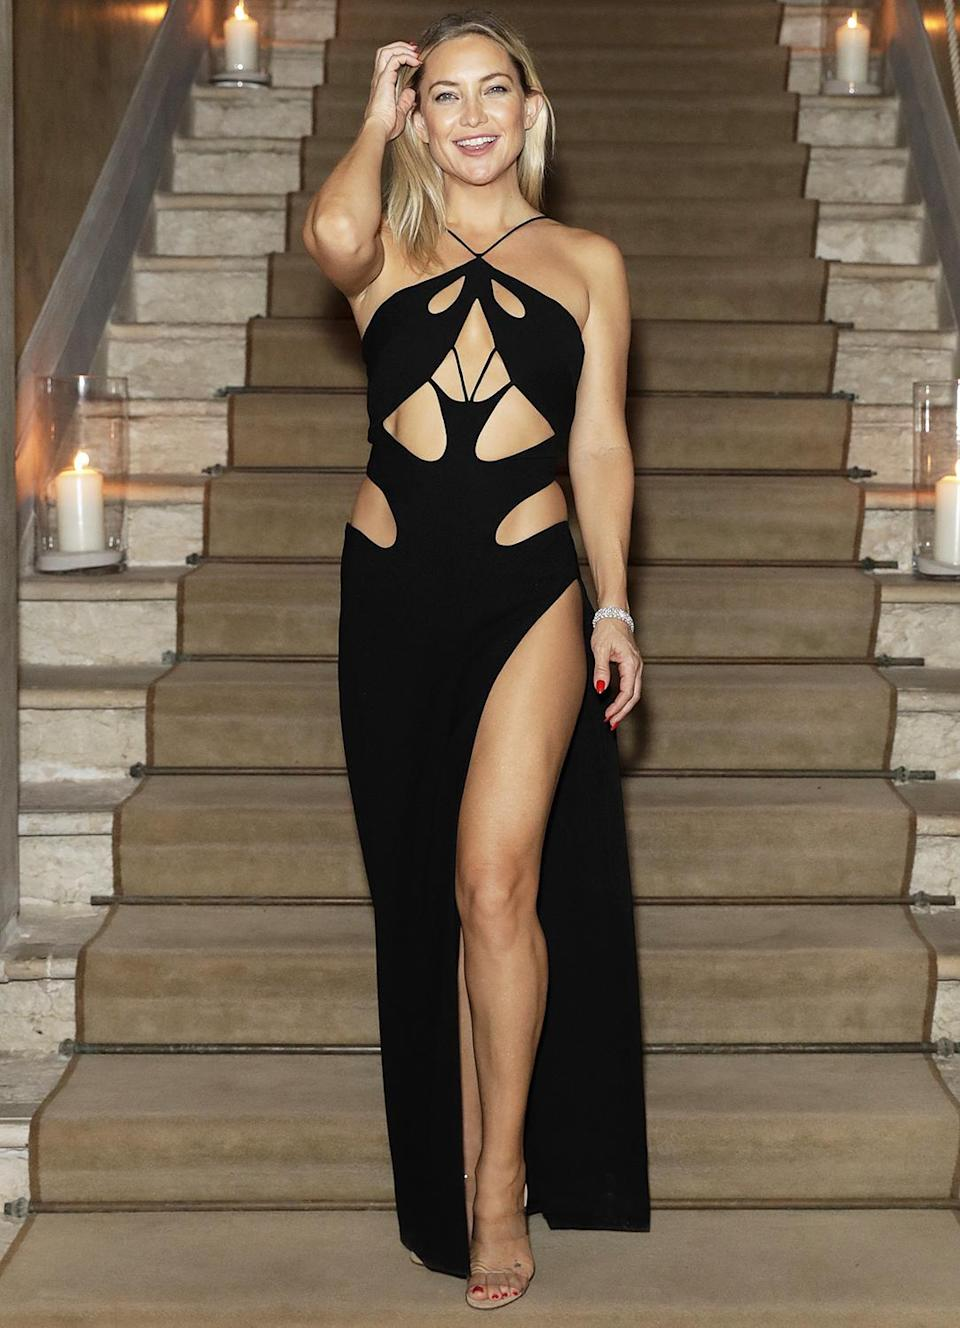 <p>Kate Hudson stands out at the Celebration of Women in Cinema Gala at the 78th Venice International Film Festival in Italy.</p>